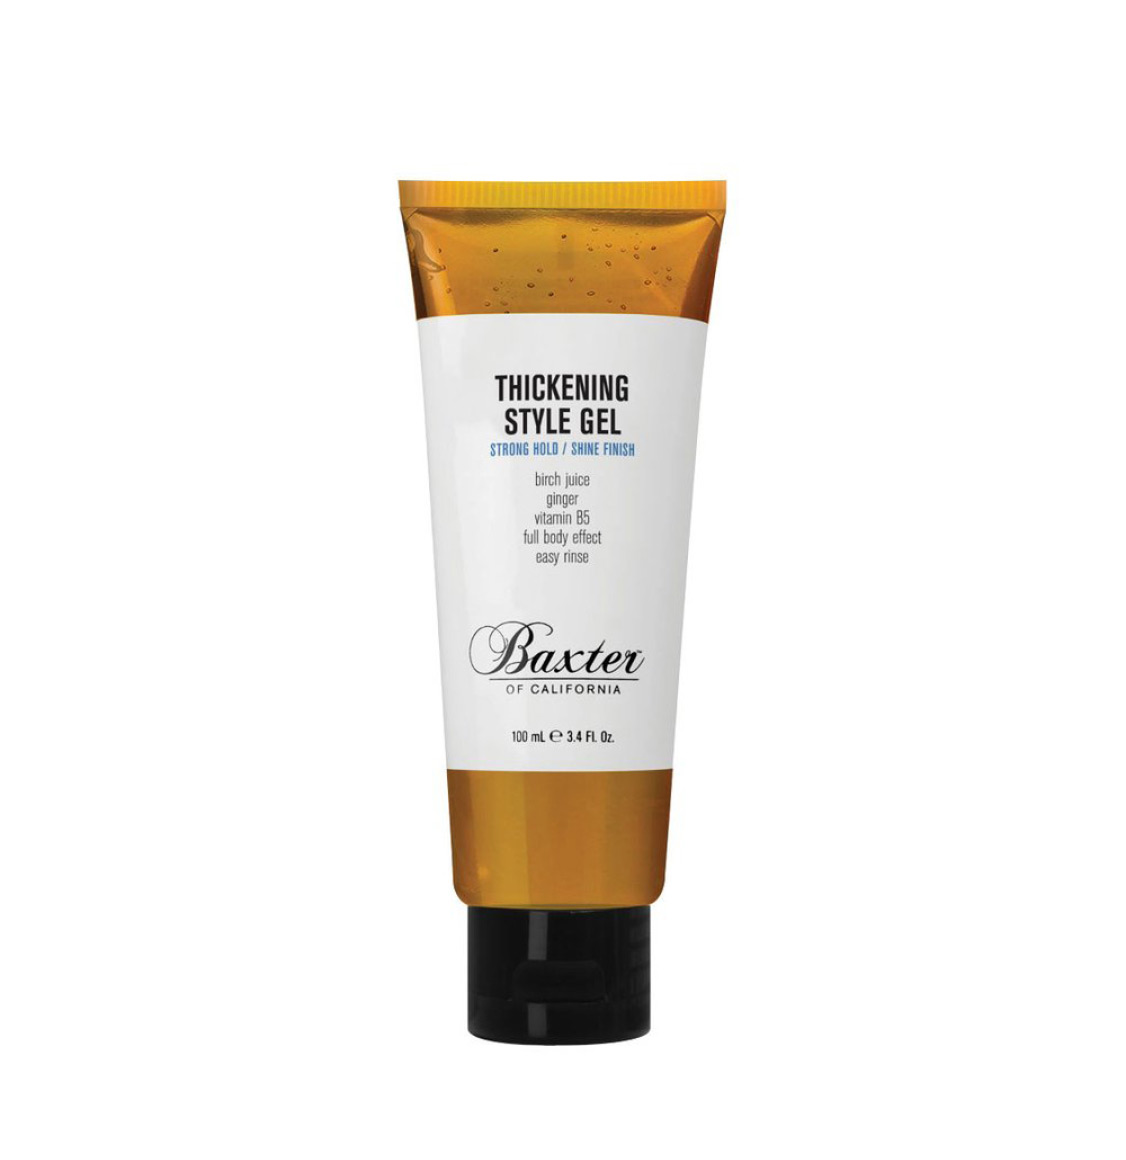 Baxter of California Thickening Style Gel 100ml